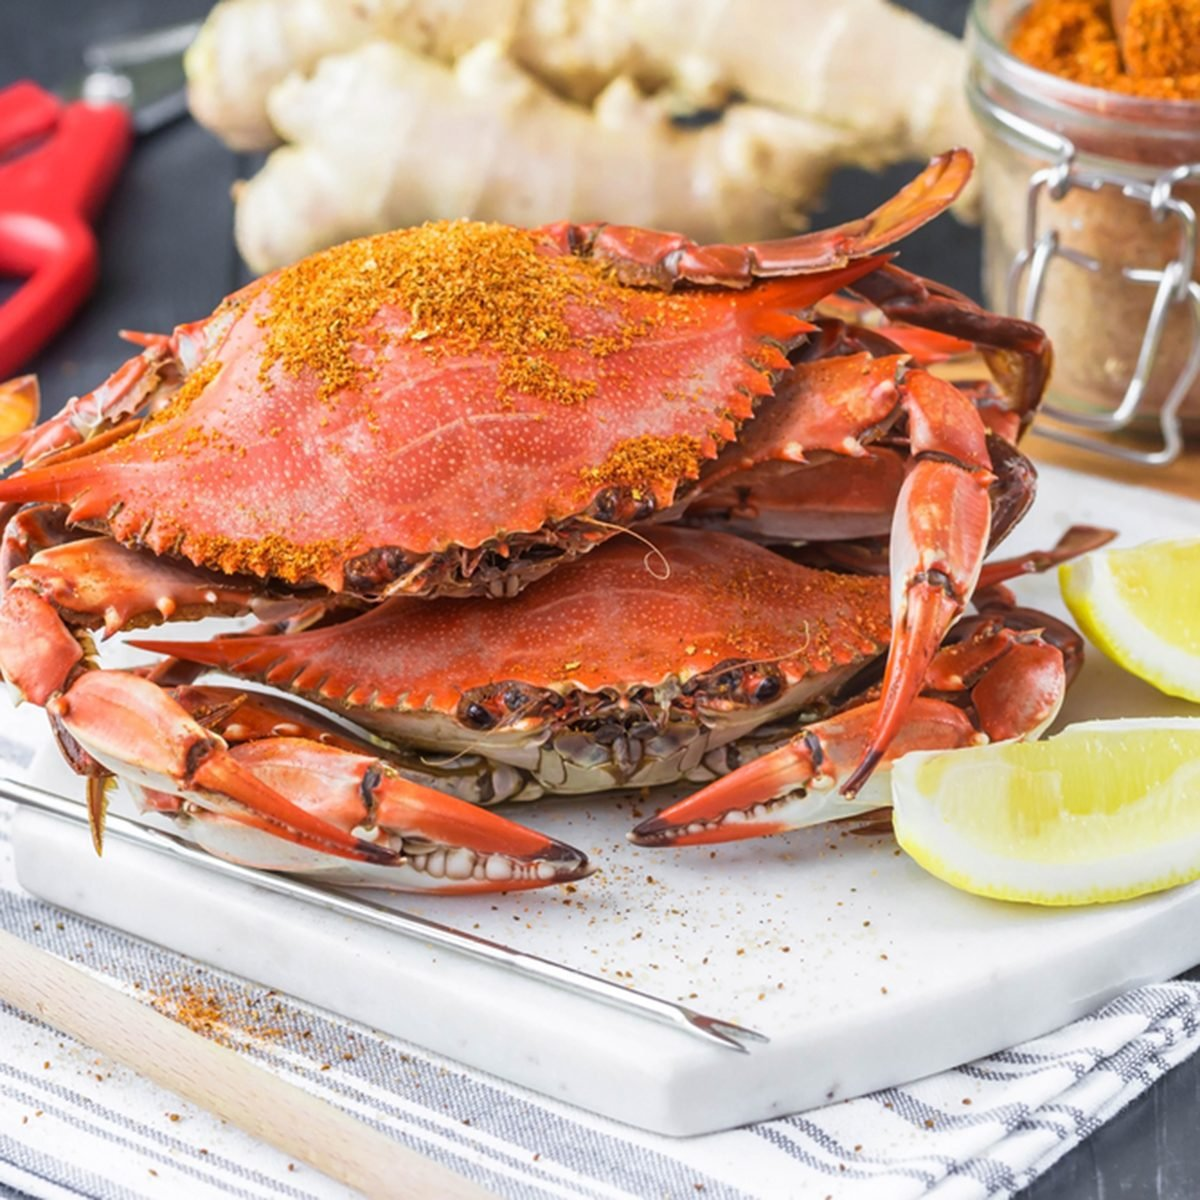 Crab Festival. Steamed crabs with spices. Maryland blue crabs.; Shutterstock ID 715427029; Job (TFH, TOH, RD, BNB, CWM, CM): TOH